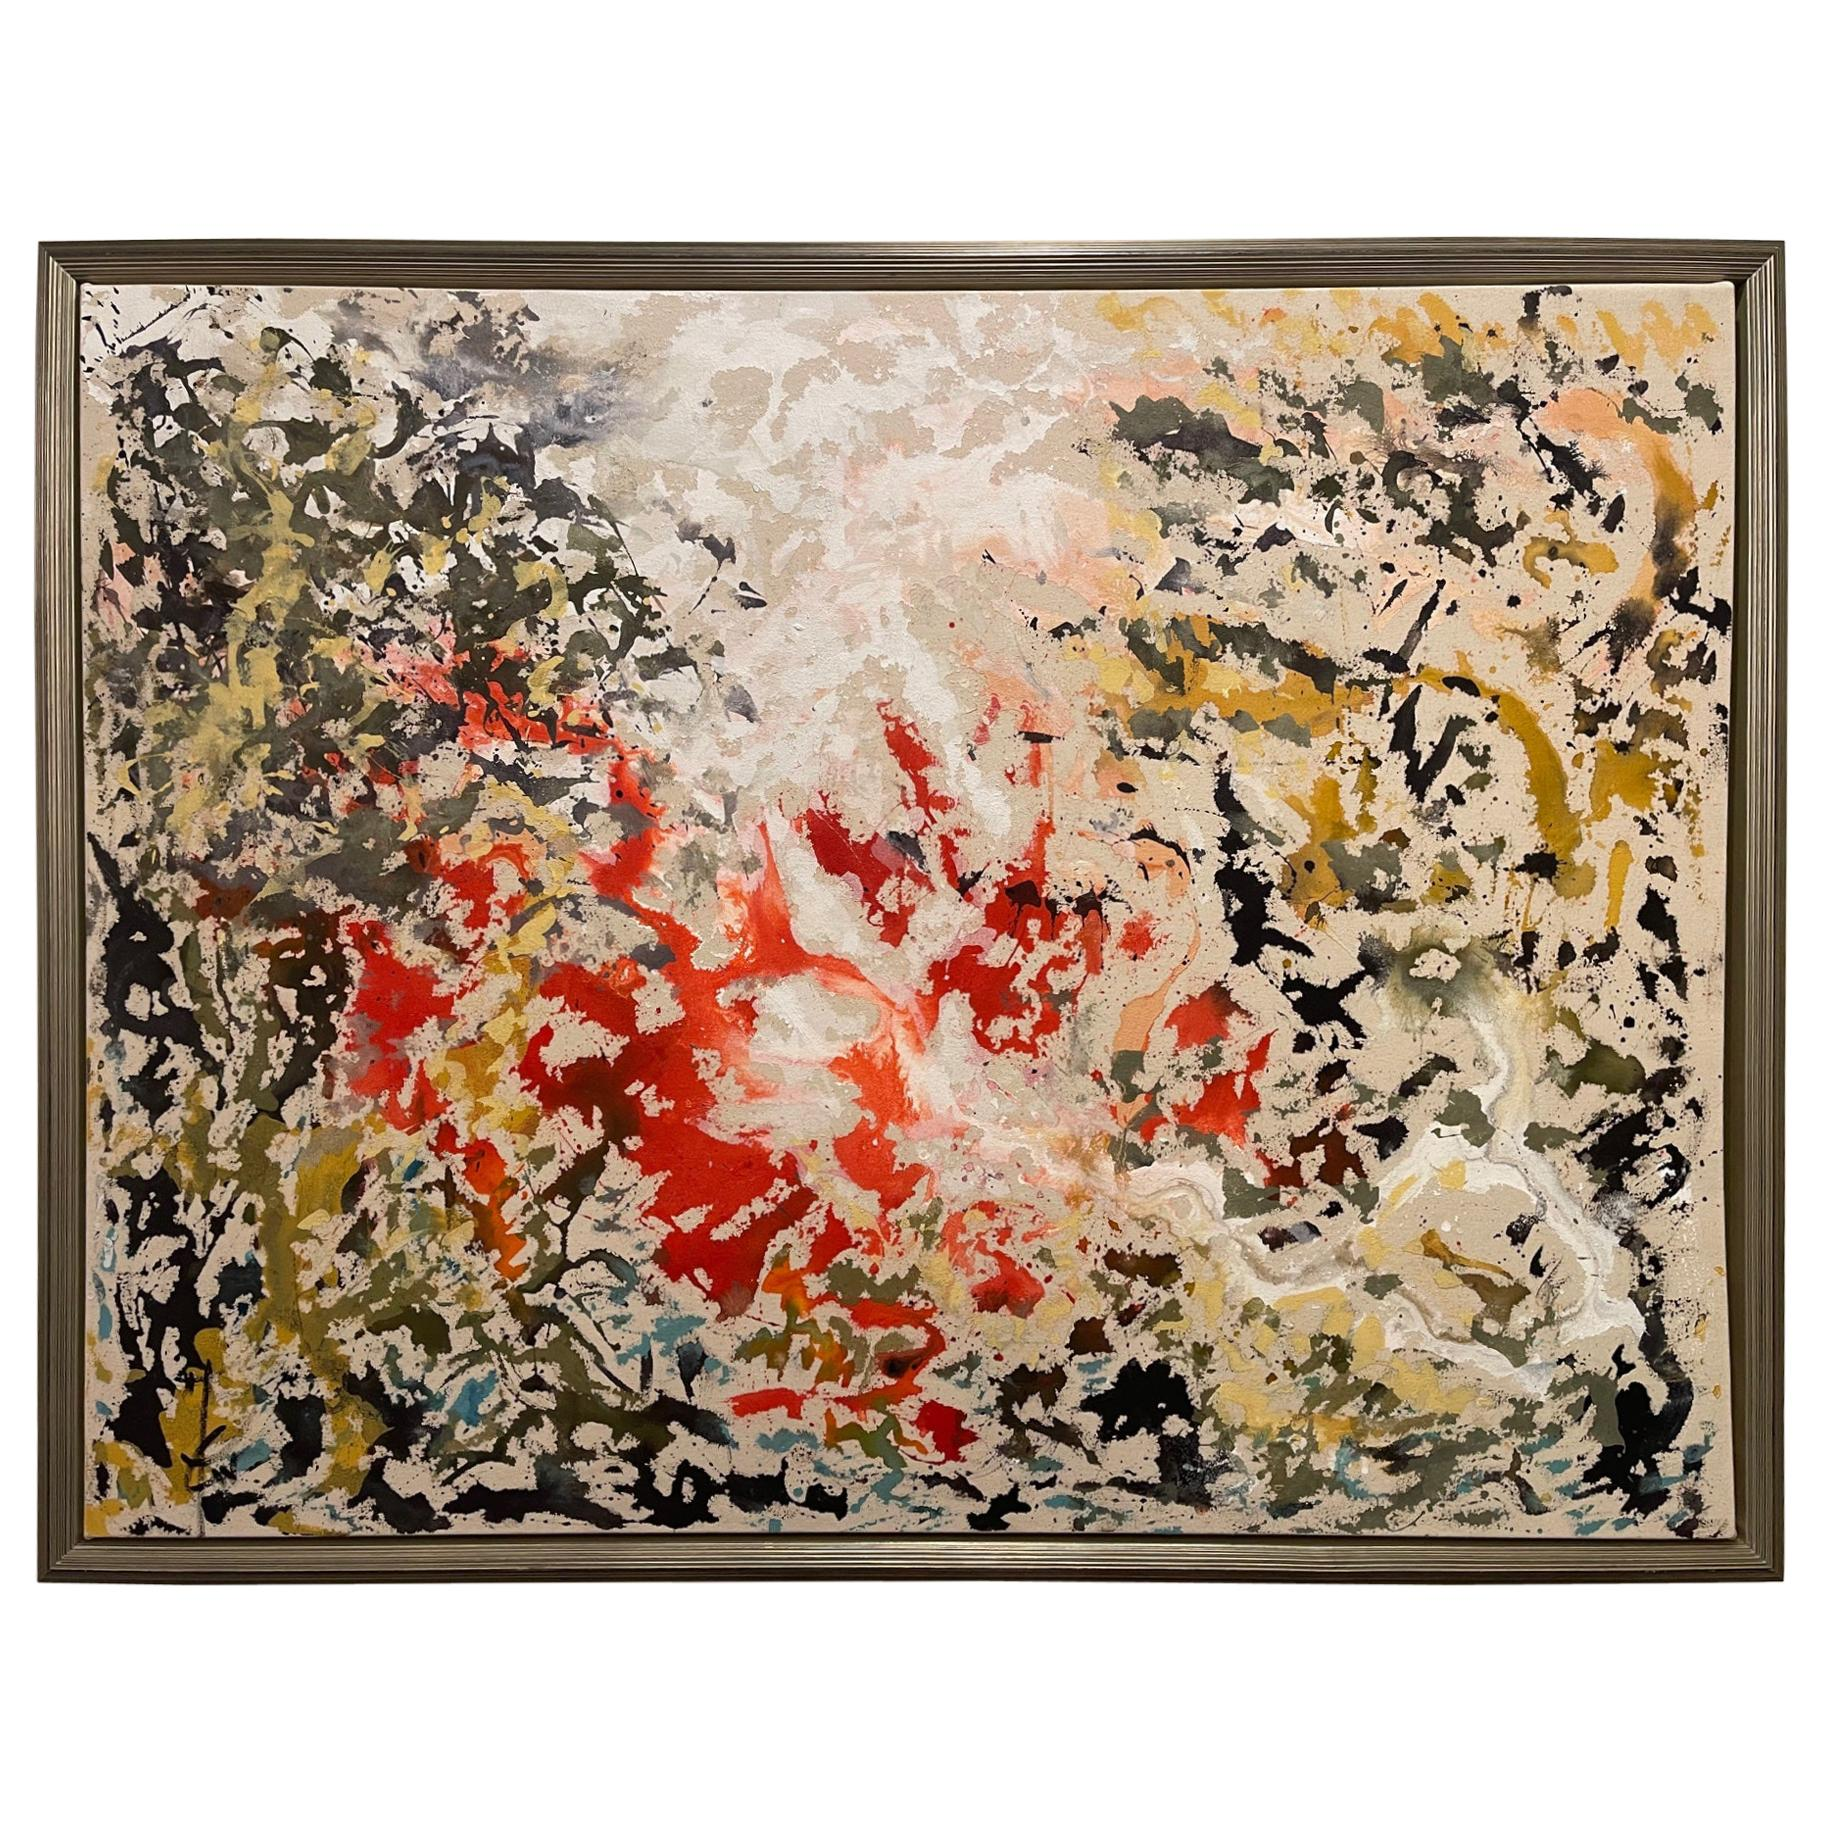 """Framed Abstract Acrylic on Canvas """"The Callot Nature II"""" by Jacqueline Carcagno"""